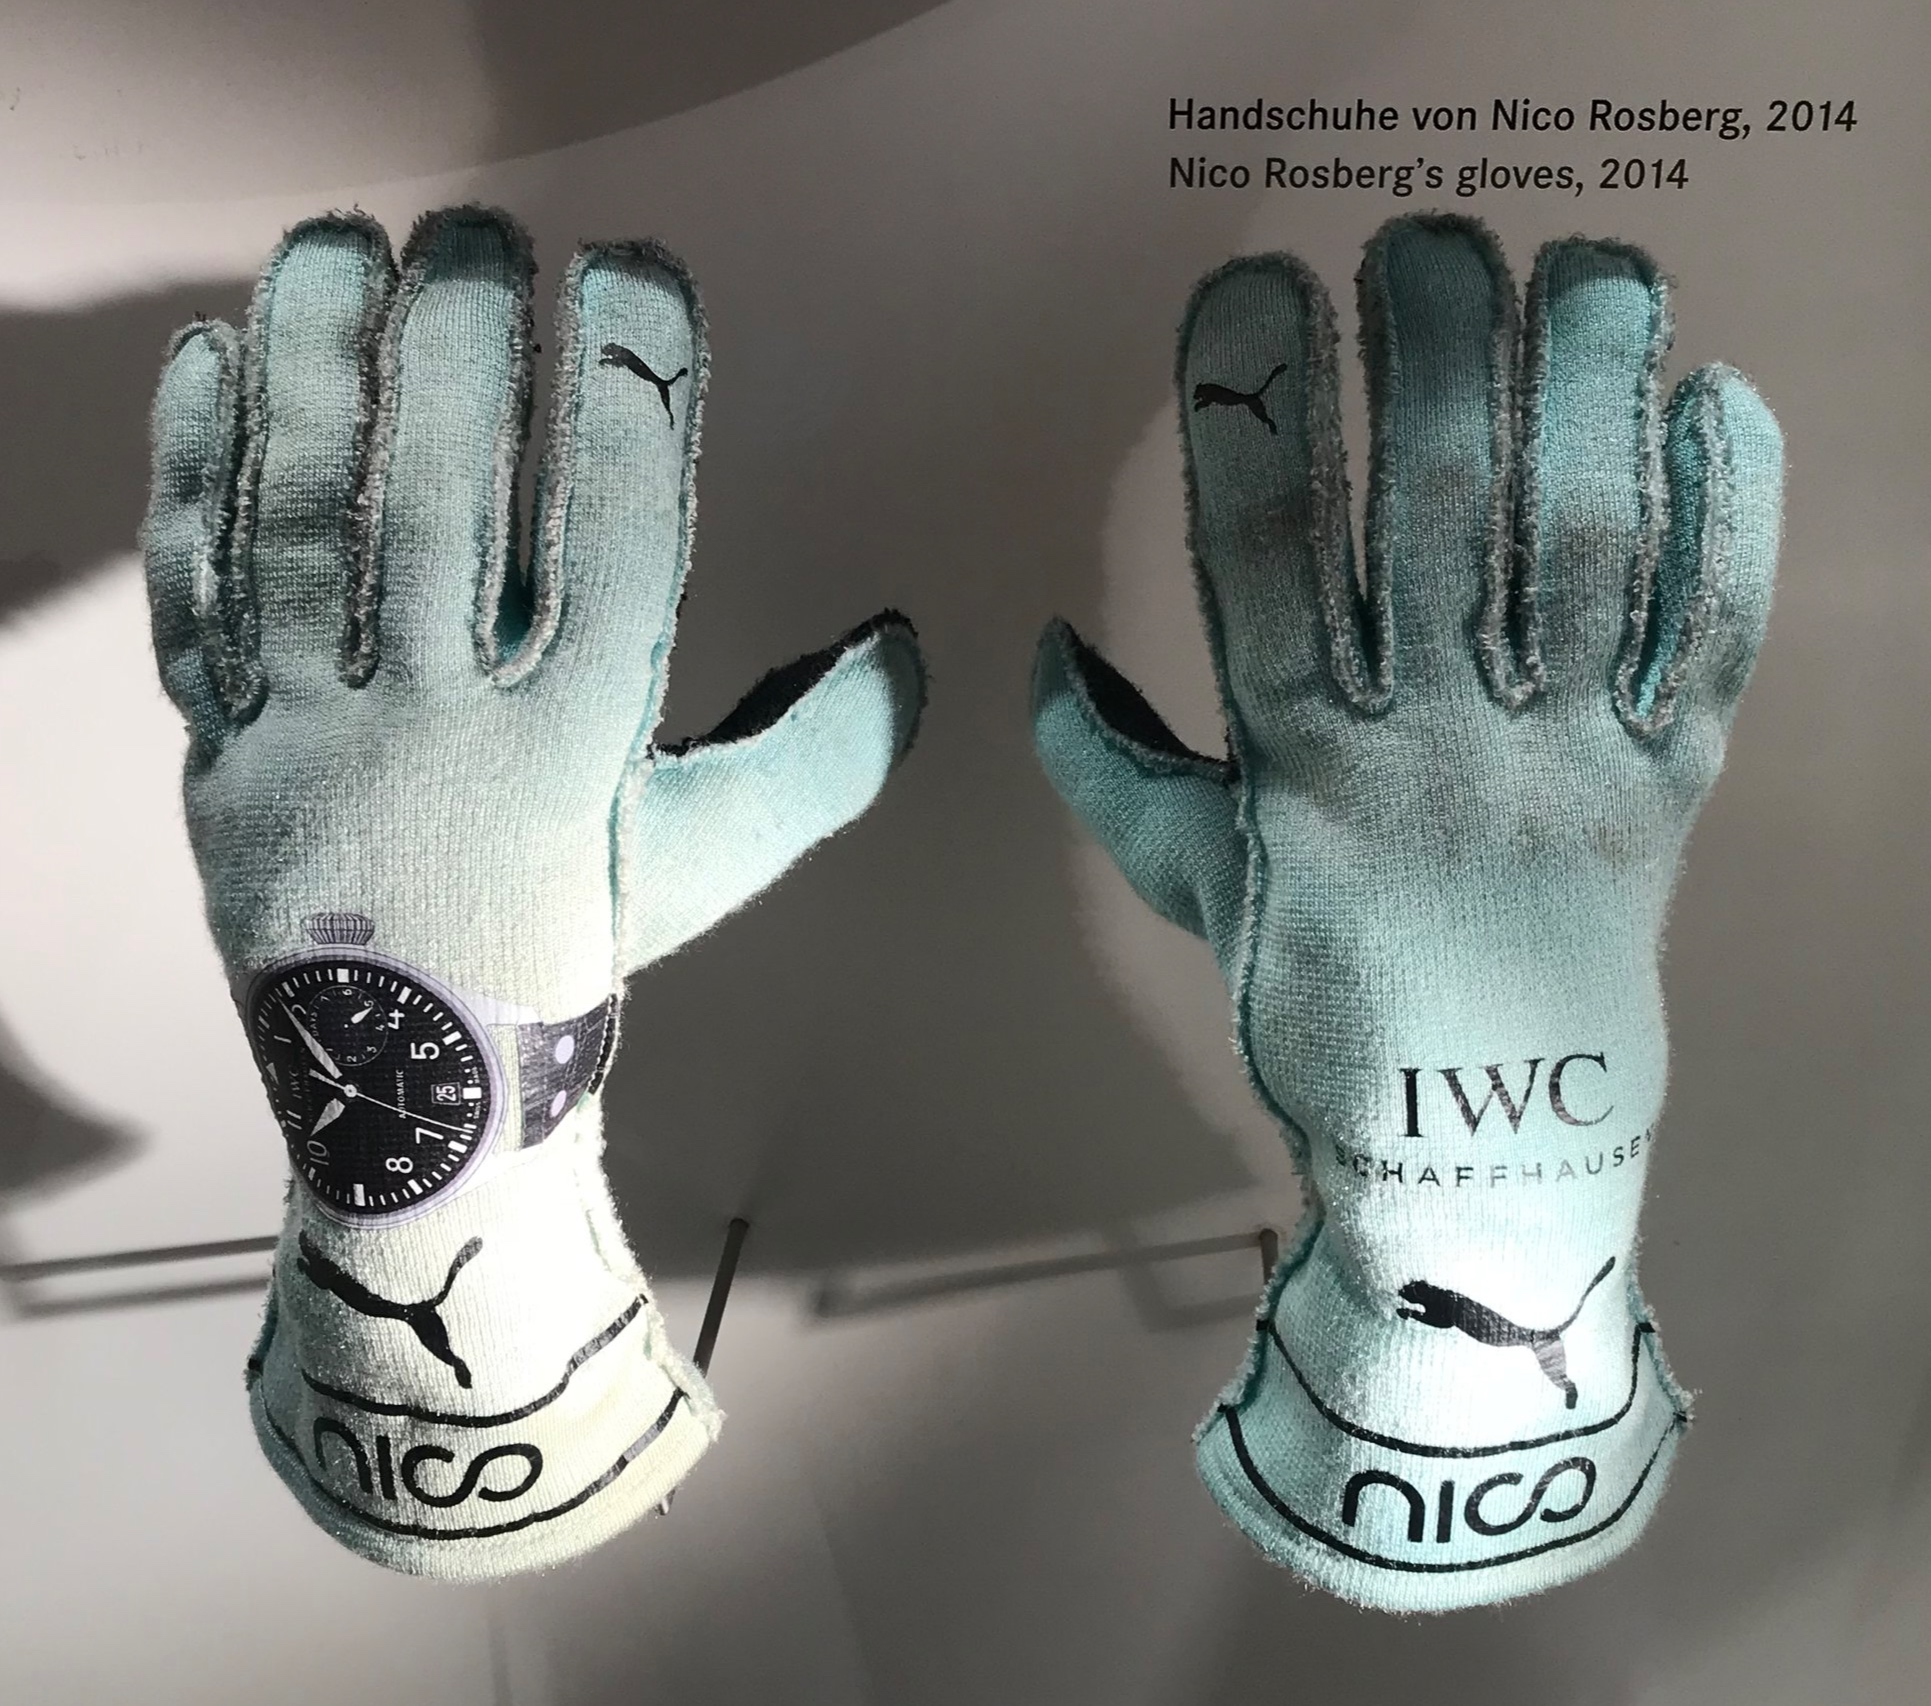 - Nico Rosberg's Gloves, 2014, on display at the Mercedes-Benz Museum, Stuttgart, Germany. Photograph: Grace Lees-Maffei, April 2018.